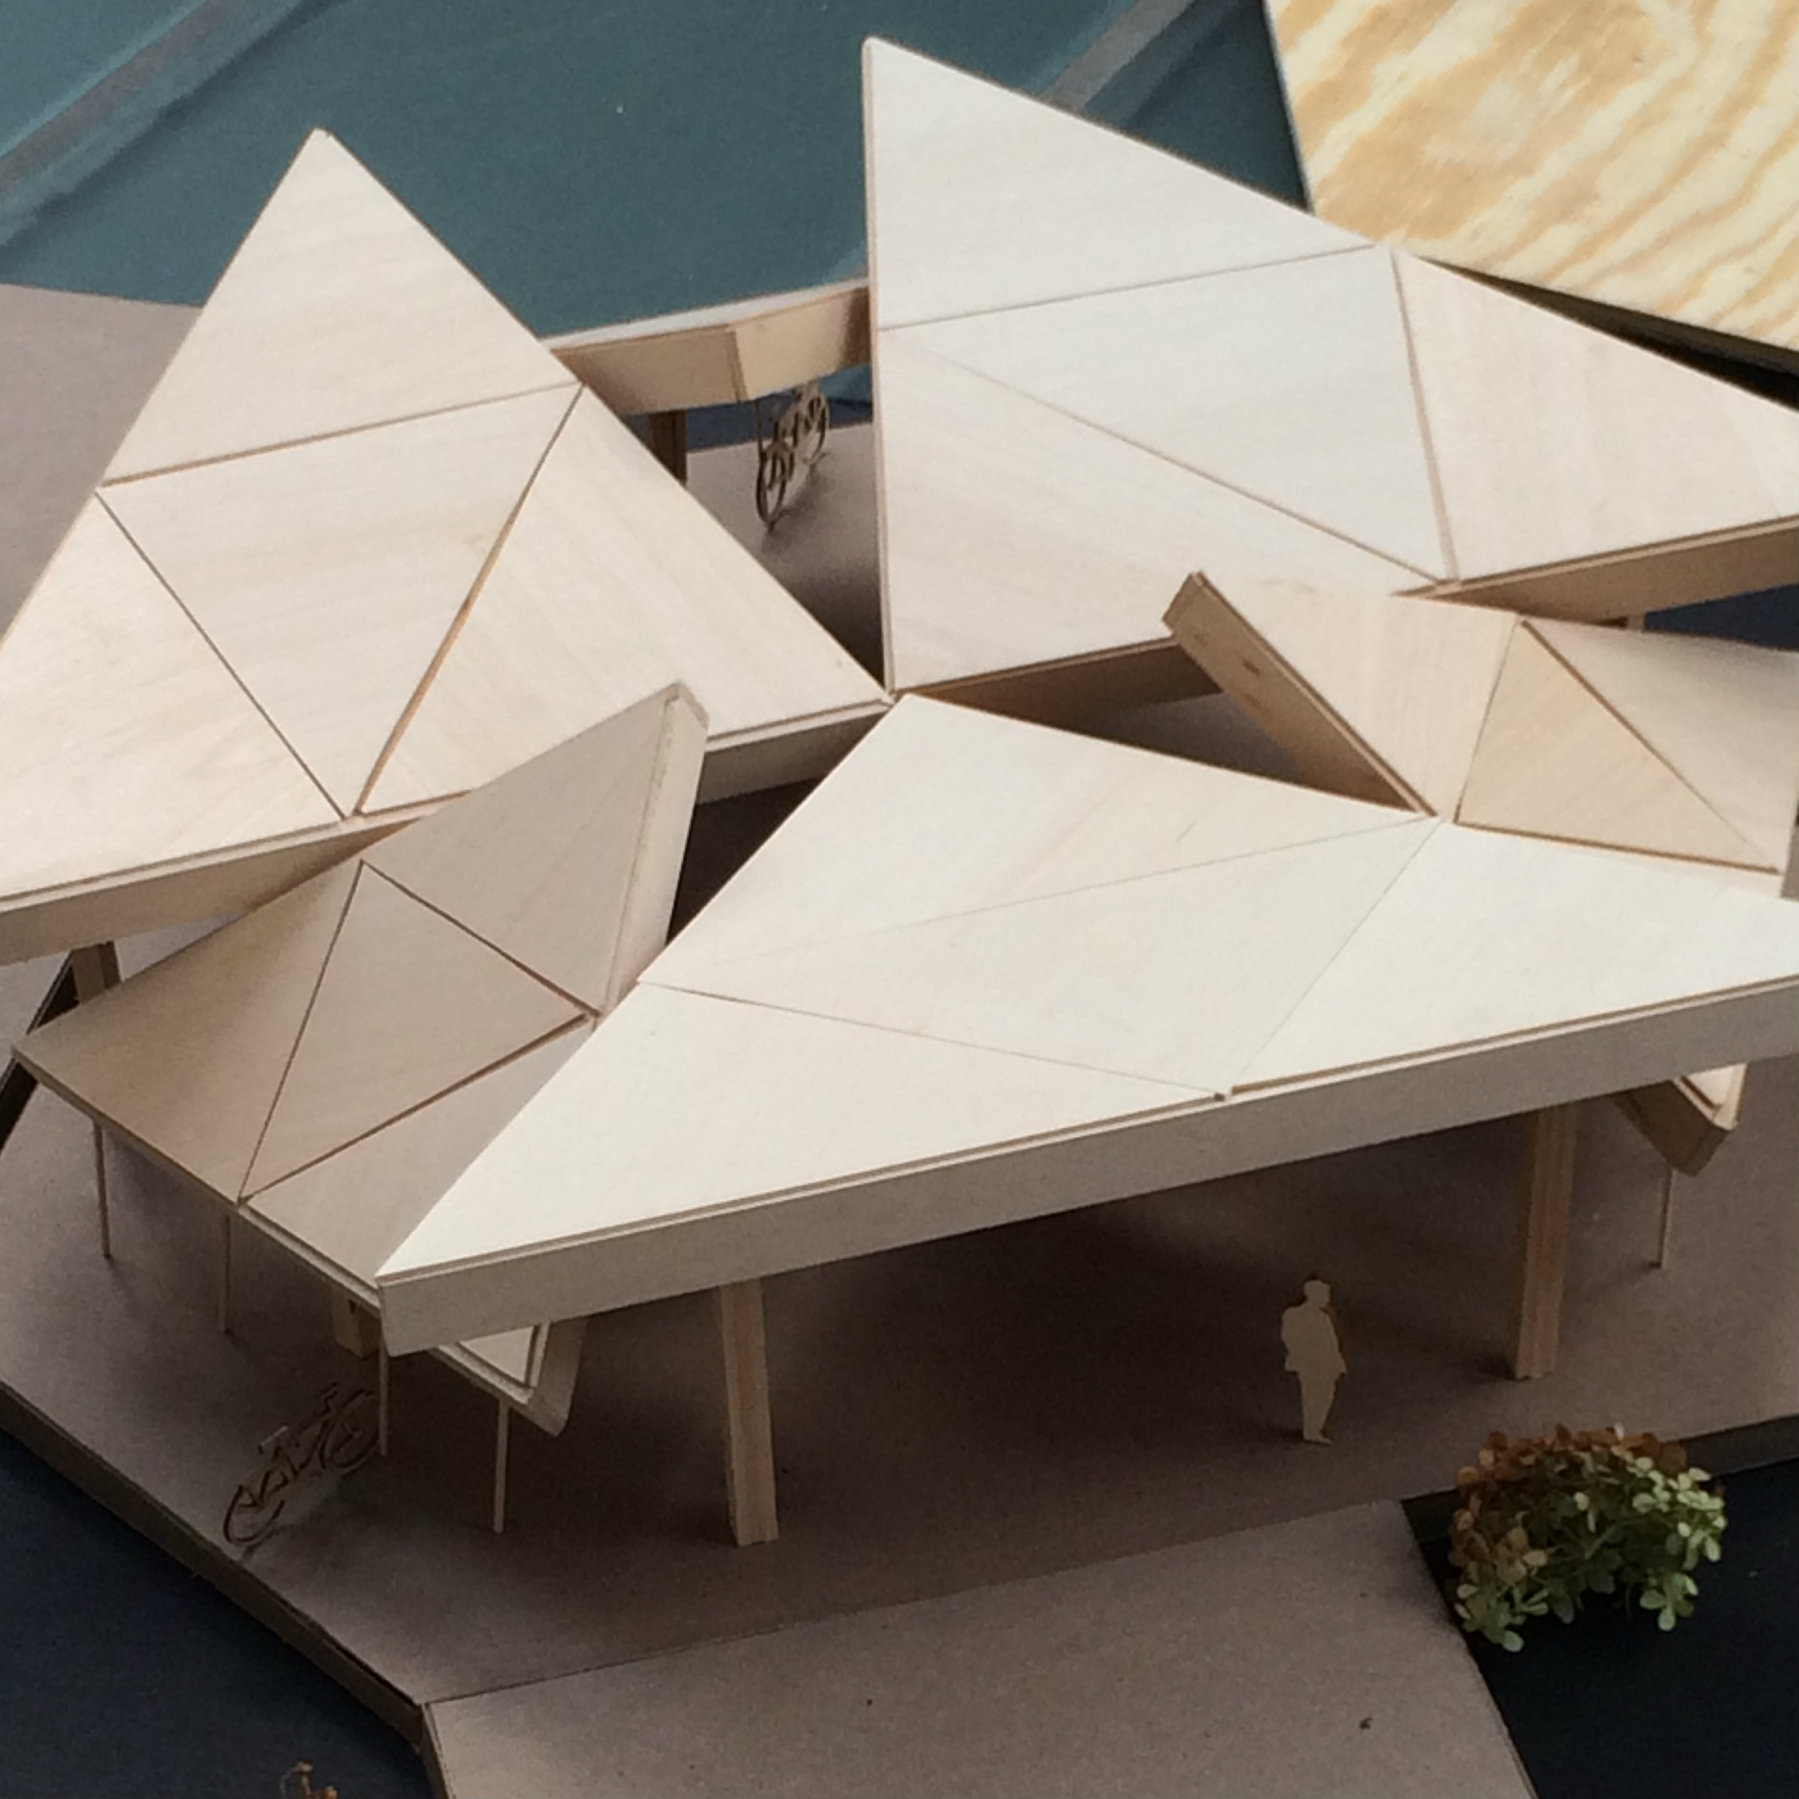 geometrically shaped model of a pavilion